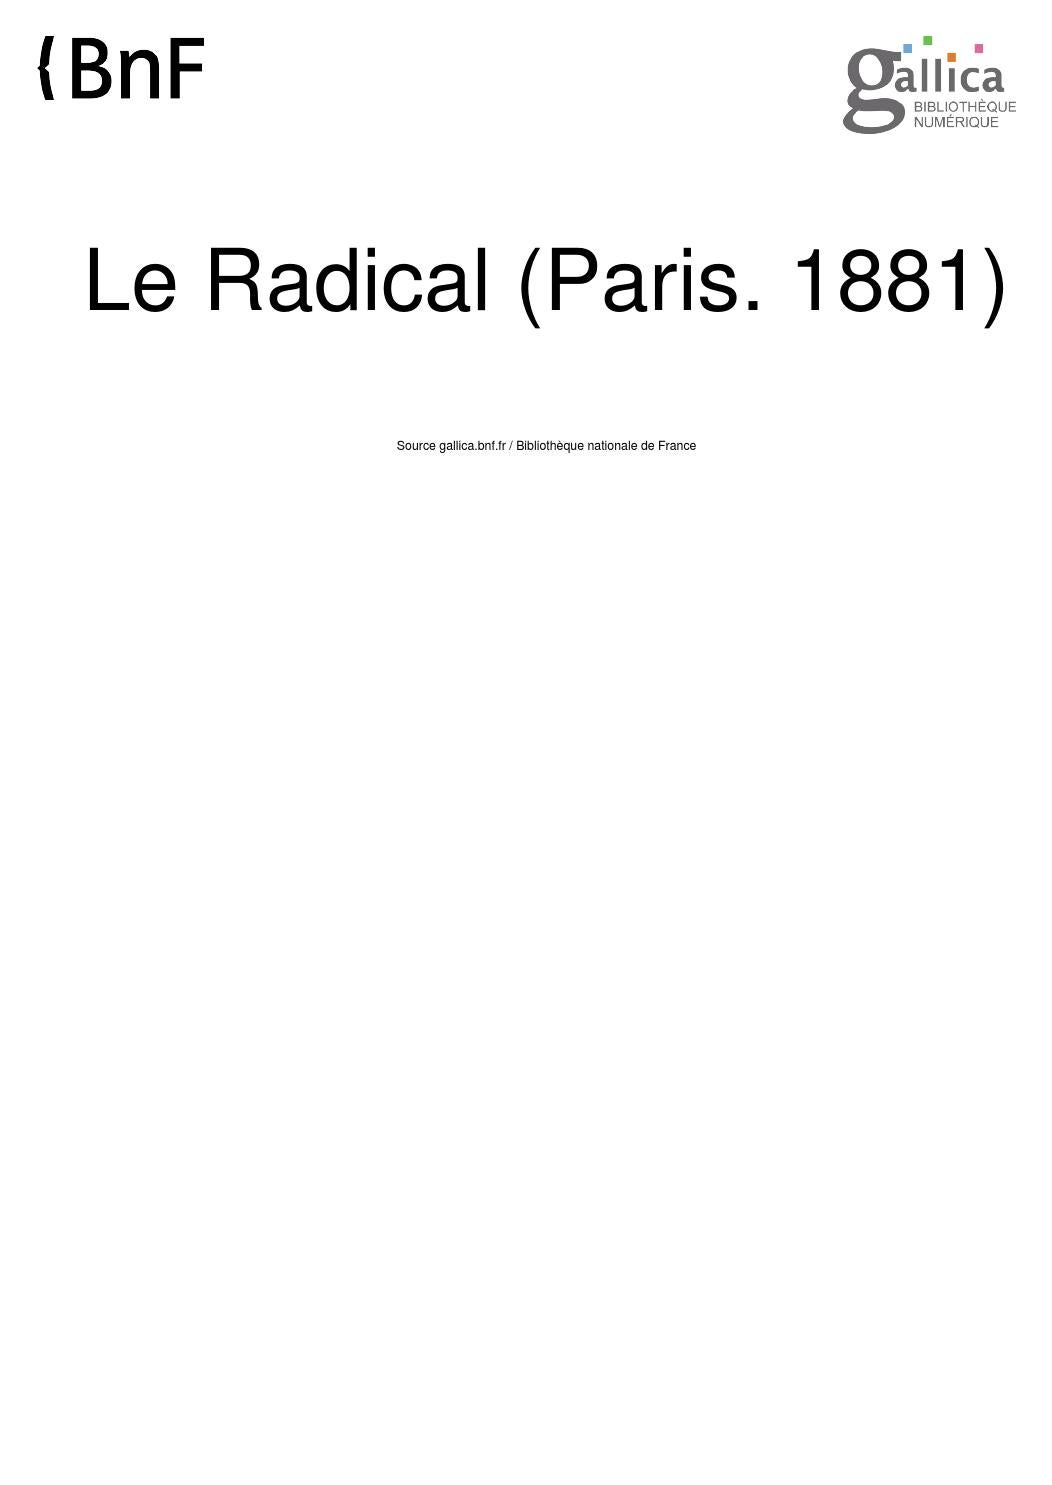 Radical By Président Aaleme Issuu 16081909 Le wm0vN8n